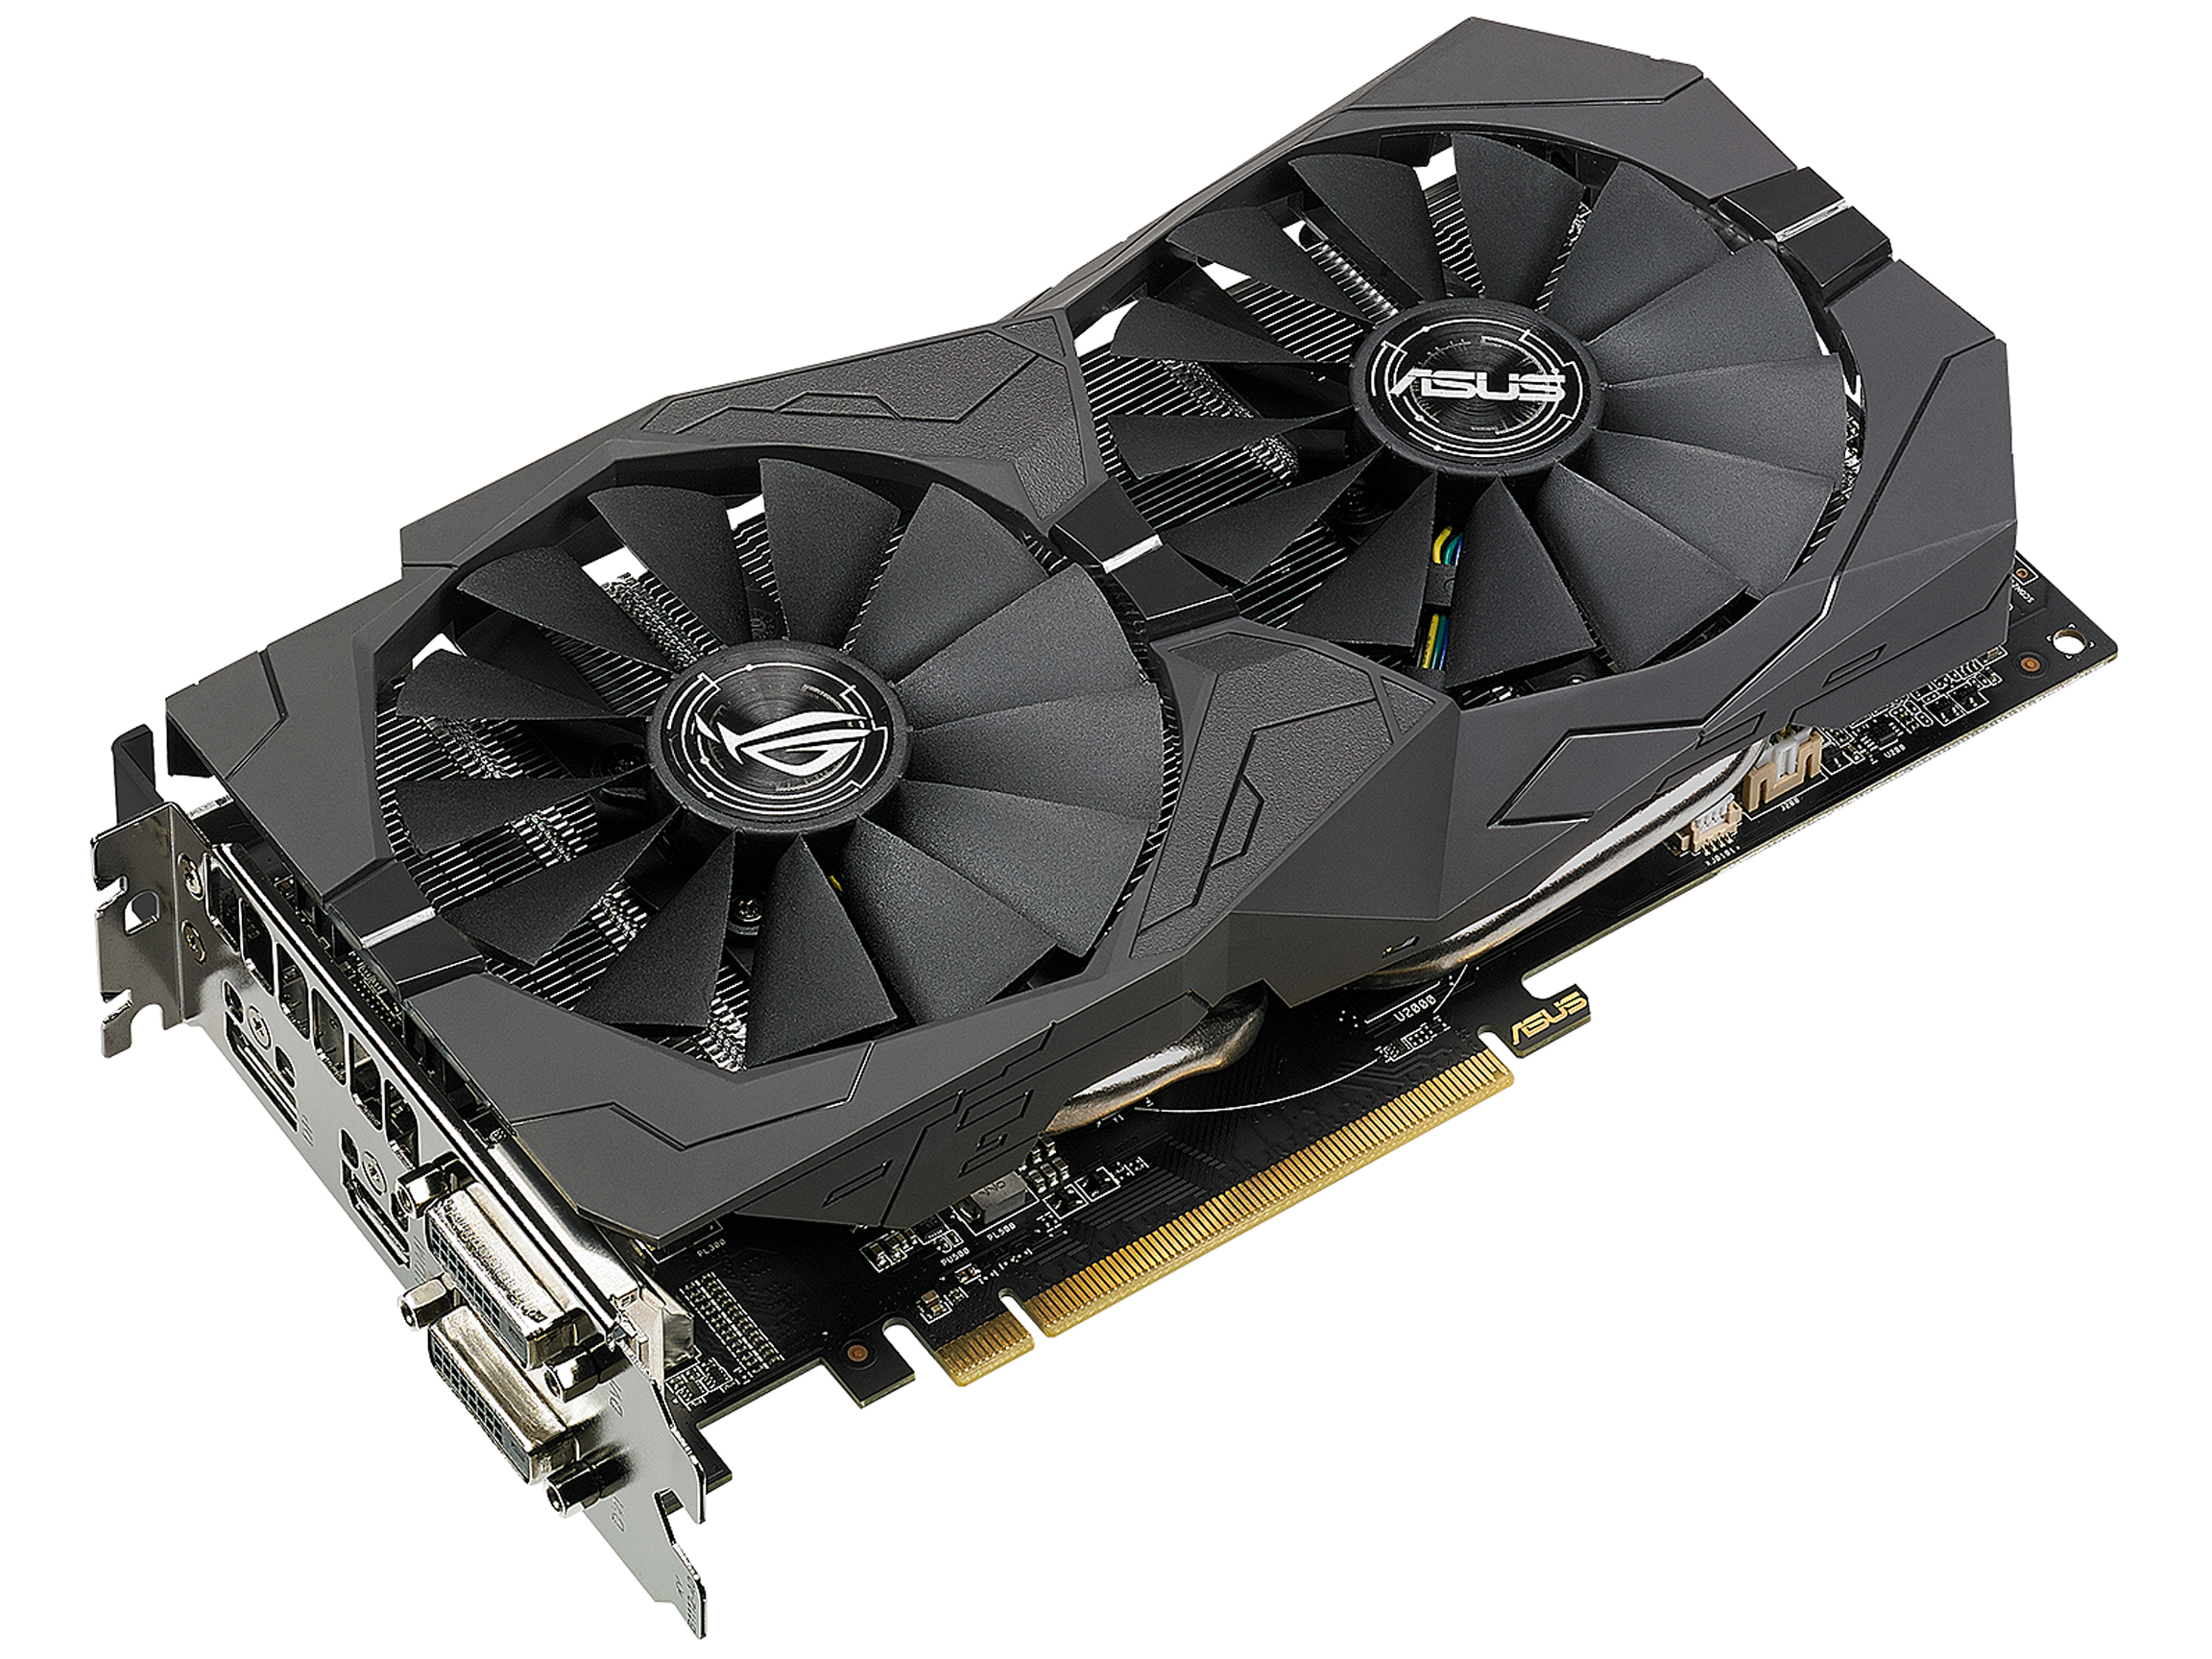 ASUS ROG Strix Radeon RX 570 OC Edition Graphics Card